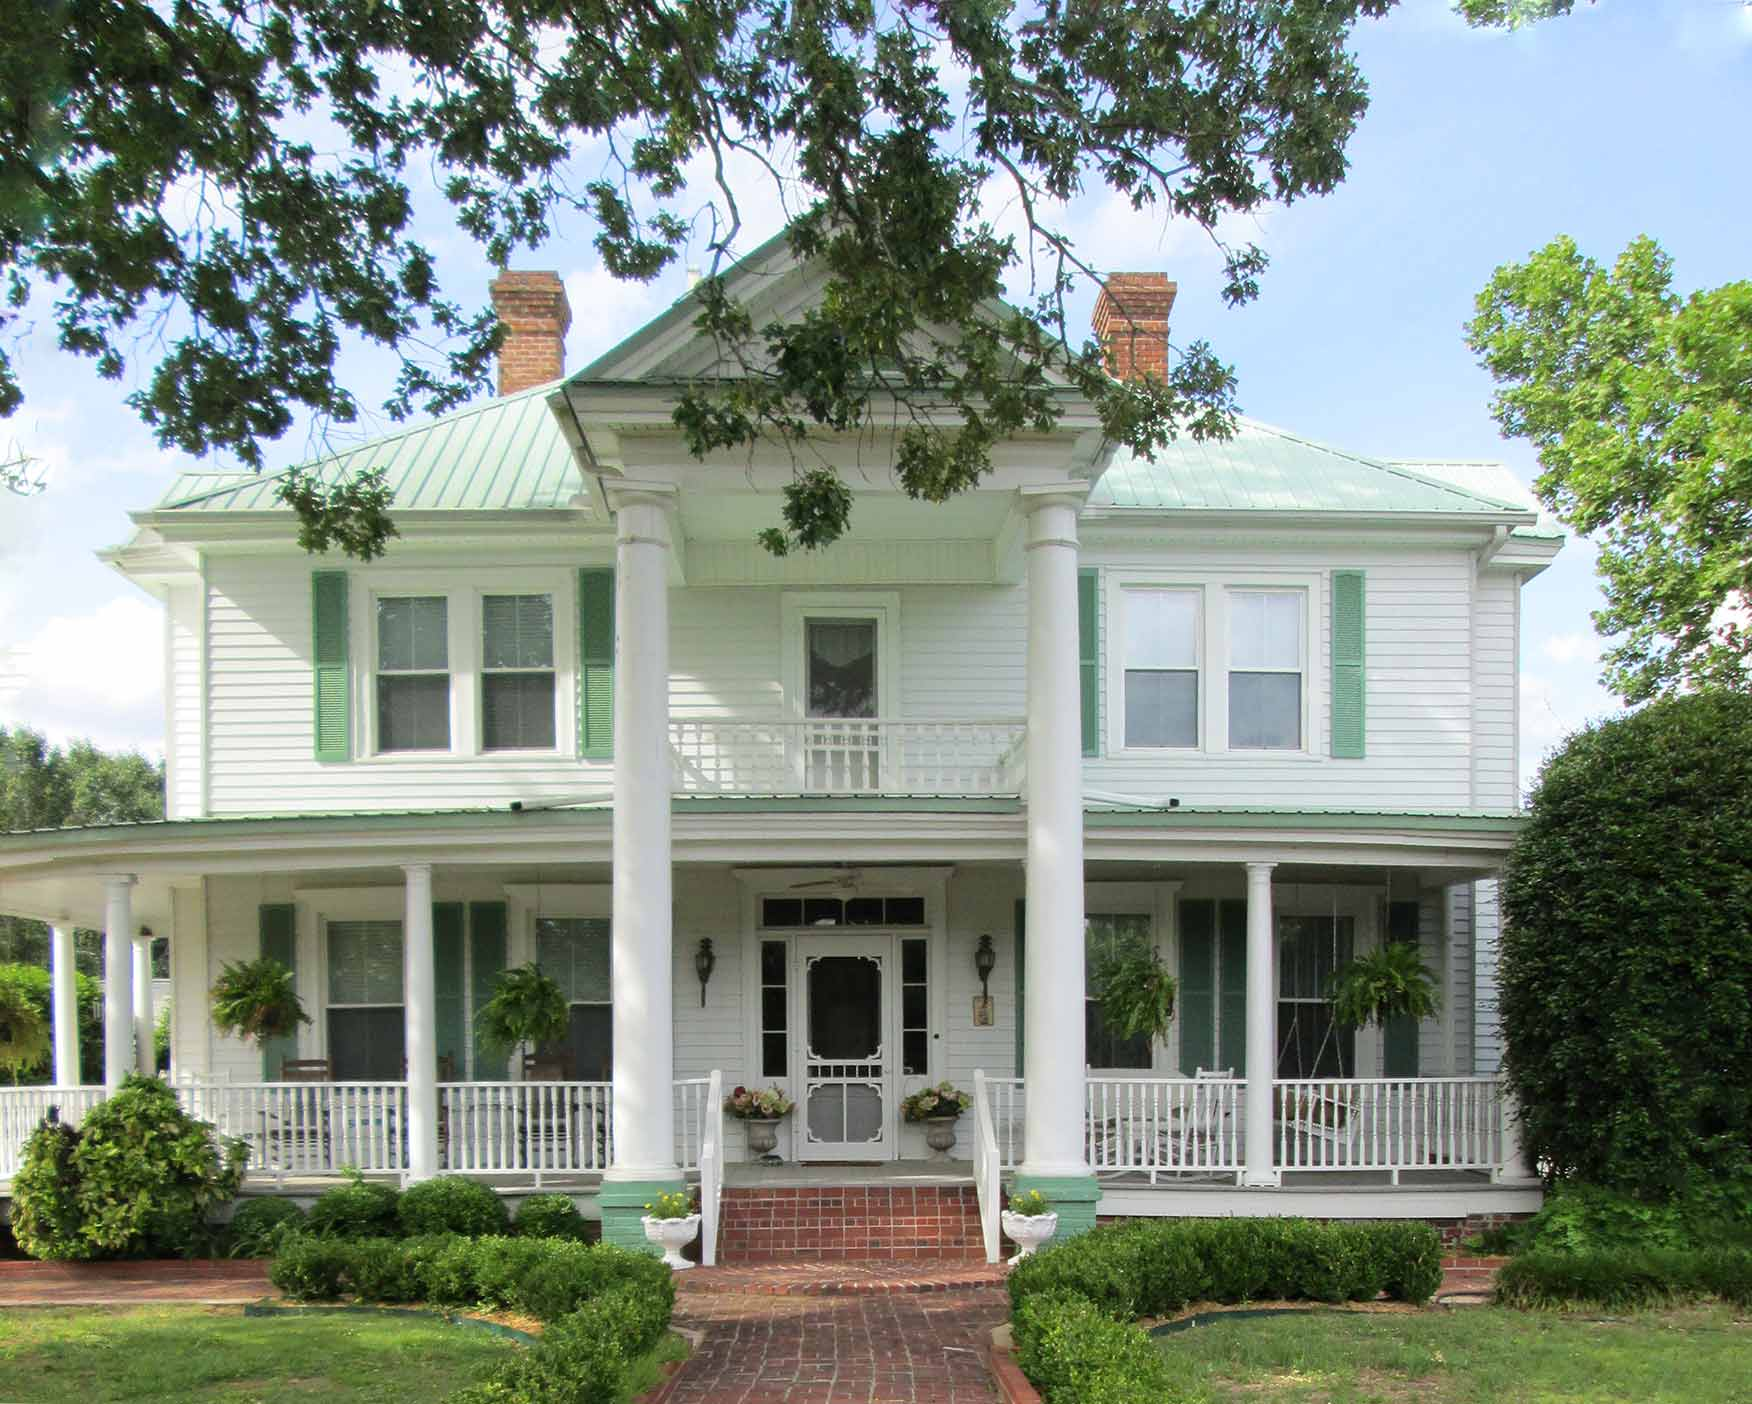 Annie's Inn BnB - Bed and Breakfast For Sale in South Carolina